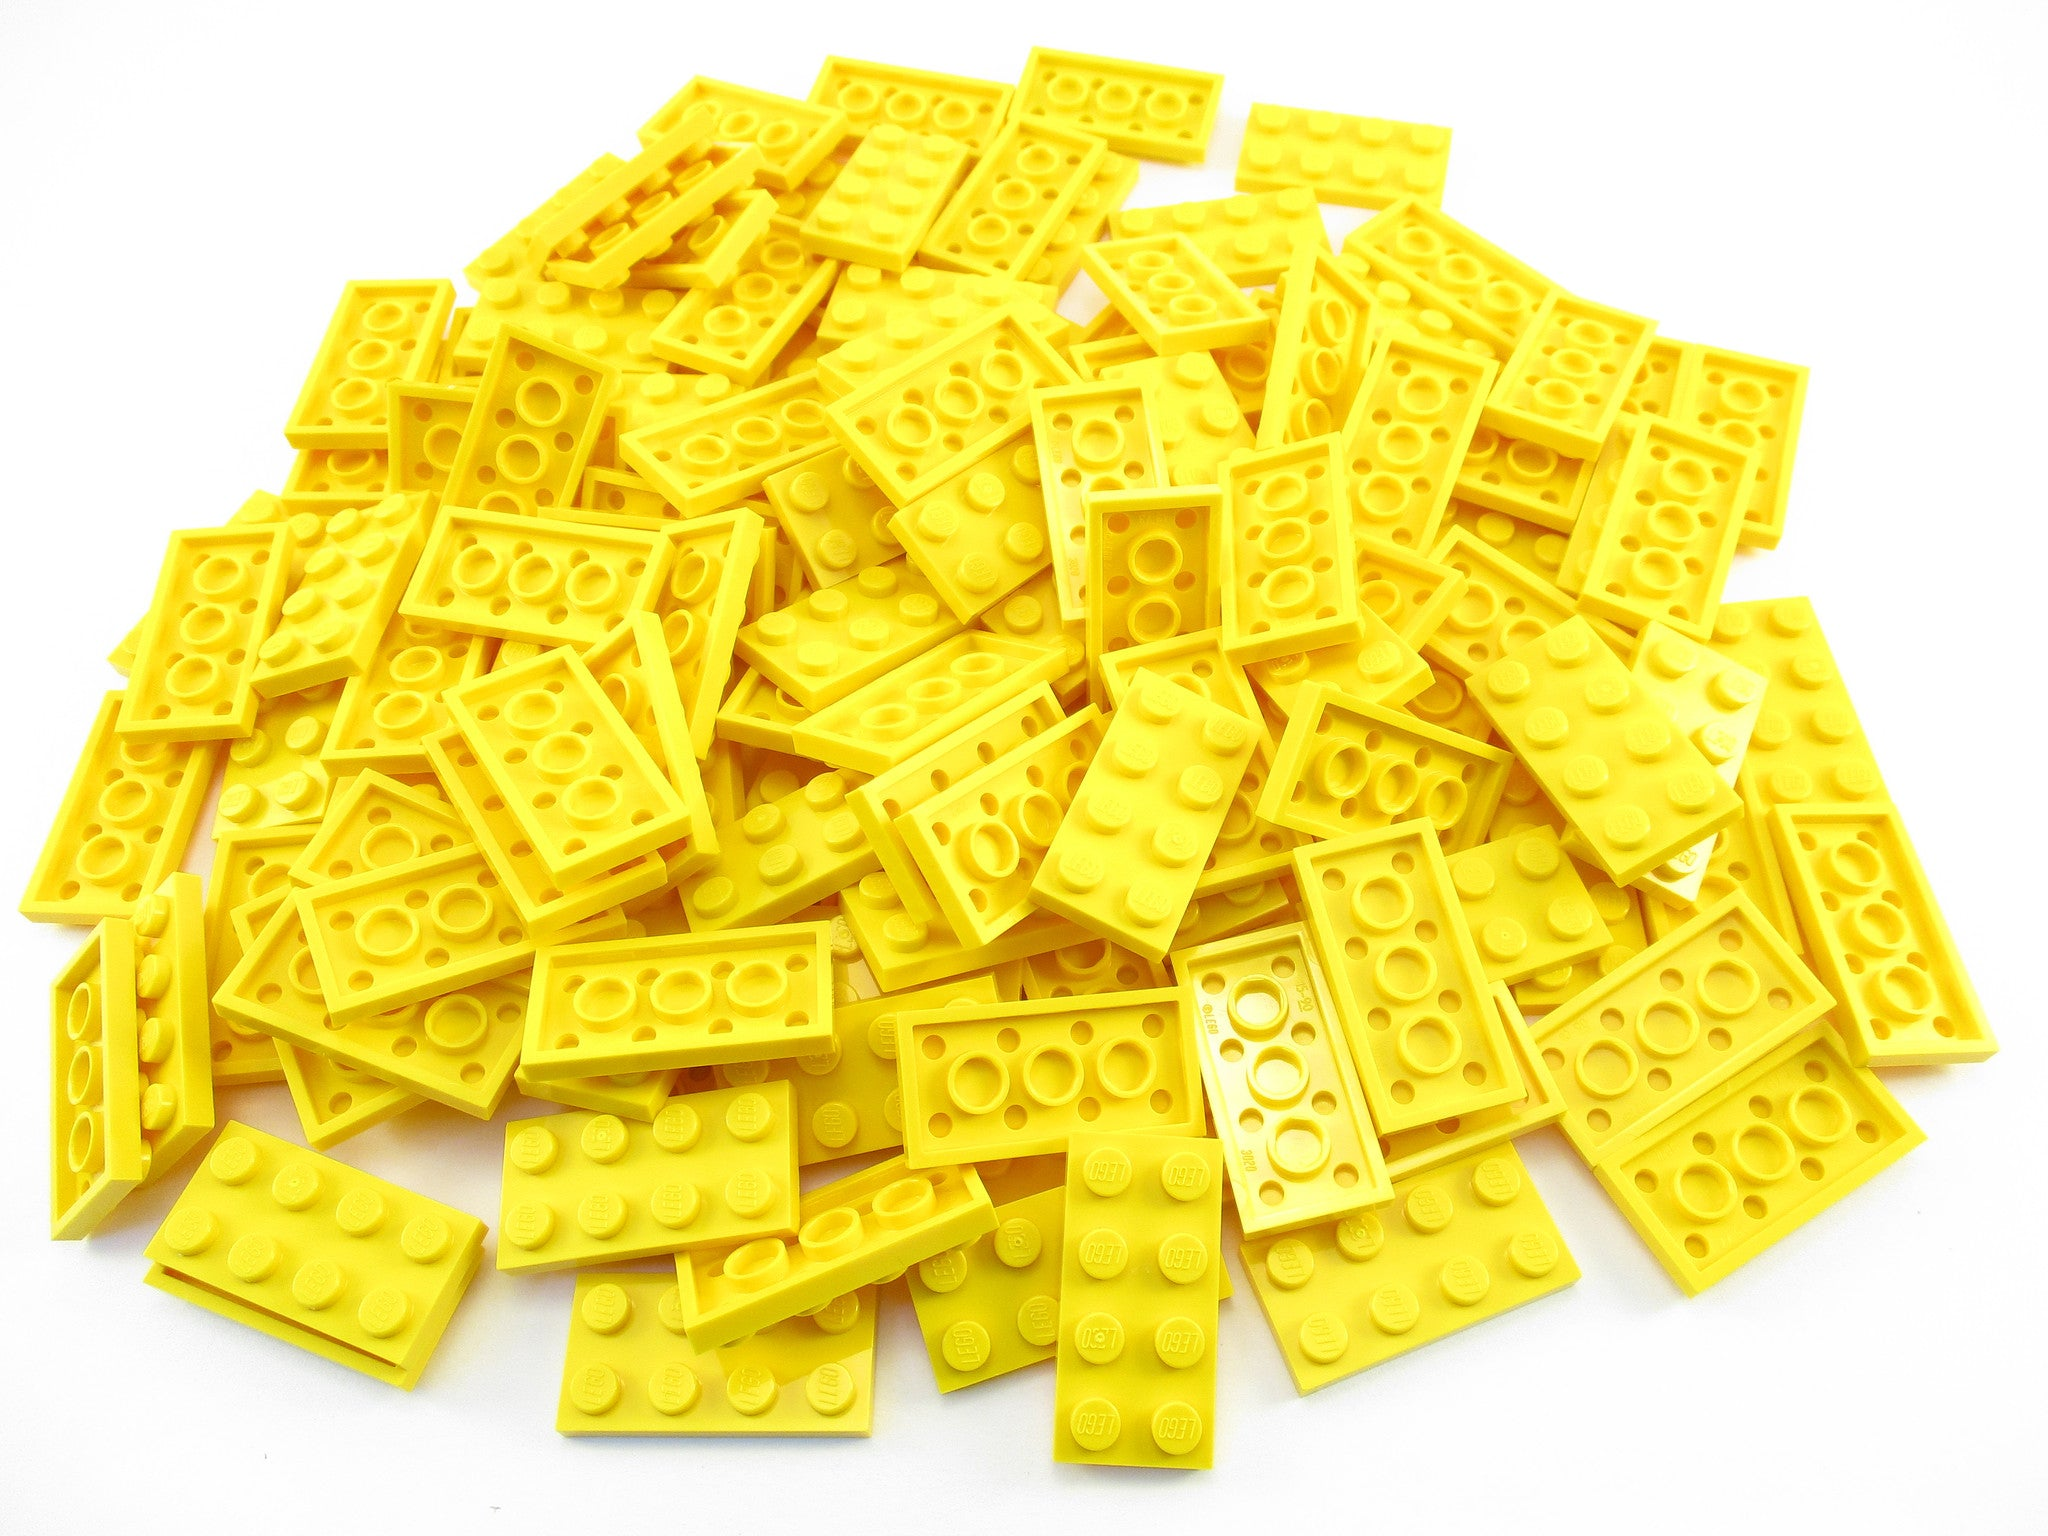 LEGO Yellow Plate 2x4 Lot of 100 Parts Pieces 3020